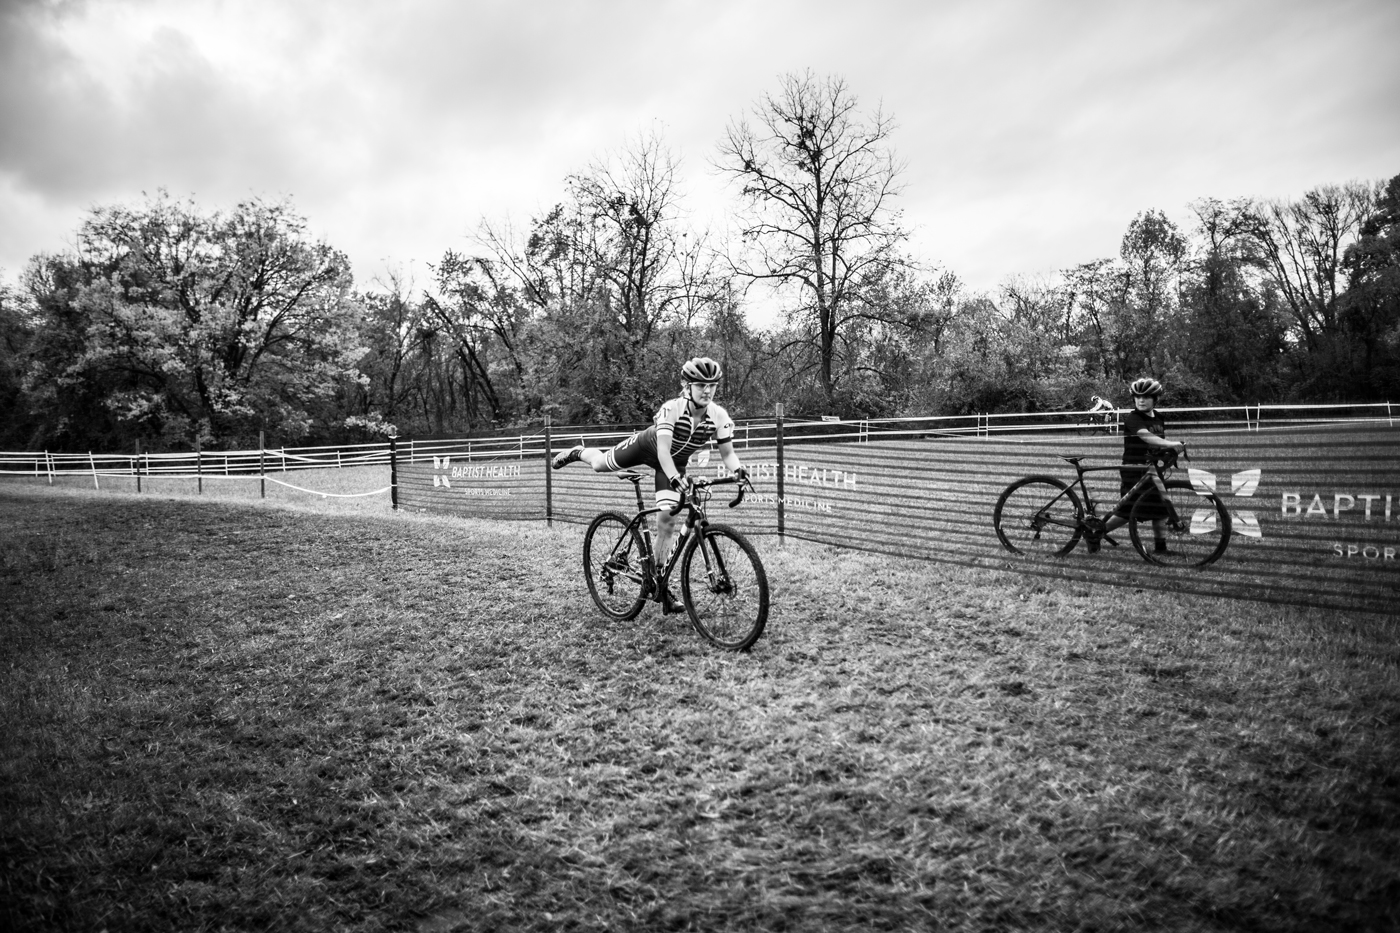 Dismounting quickly and keeping a good momentum while entering a running section is a great cyclocross training drill that you can practice at home.